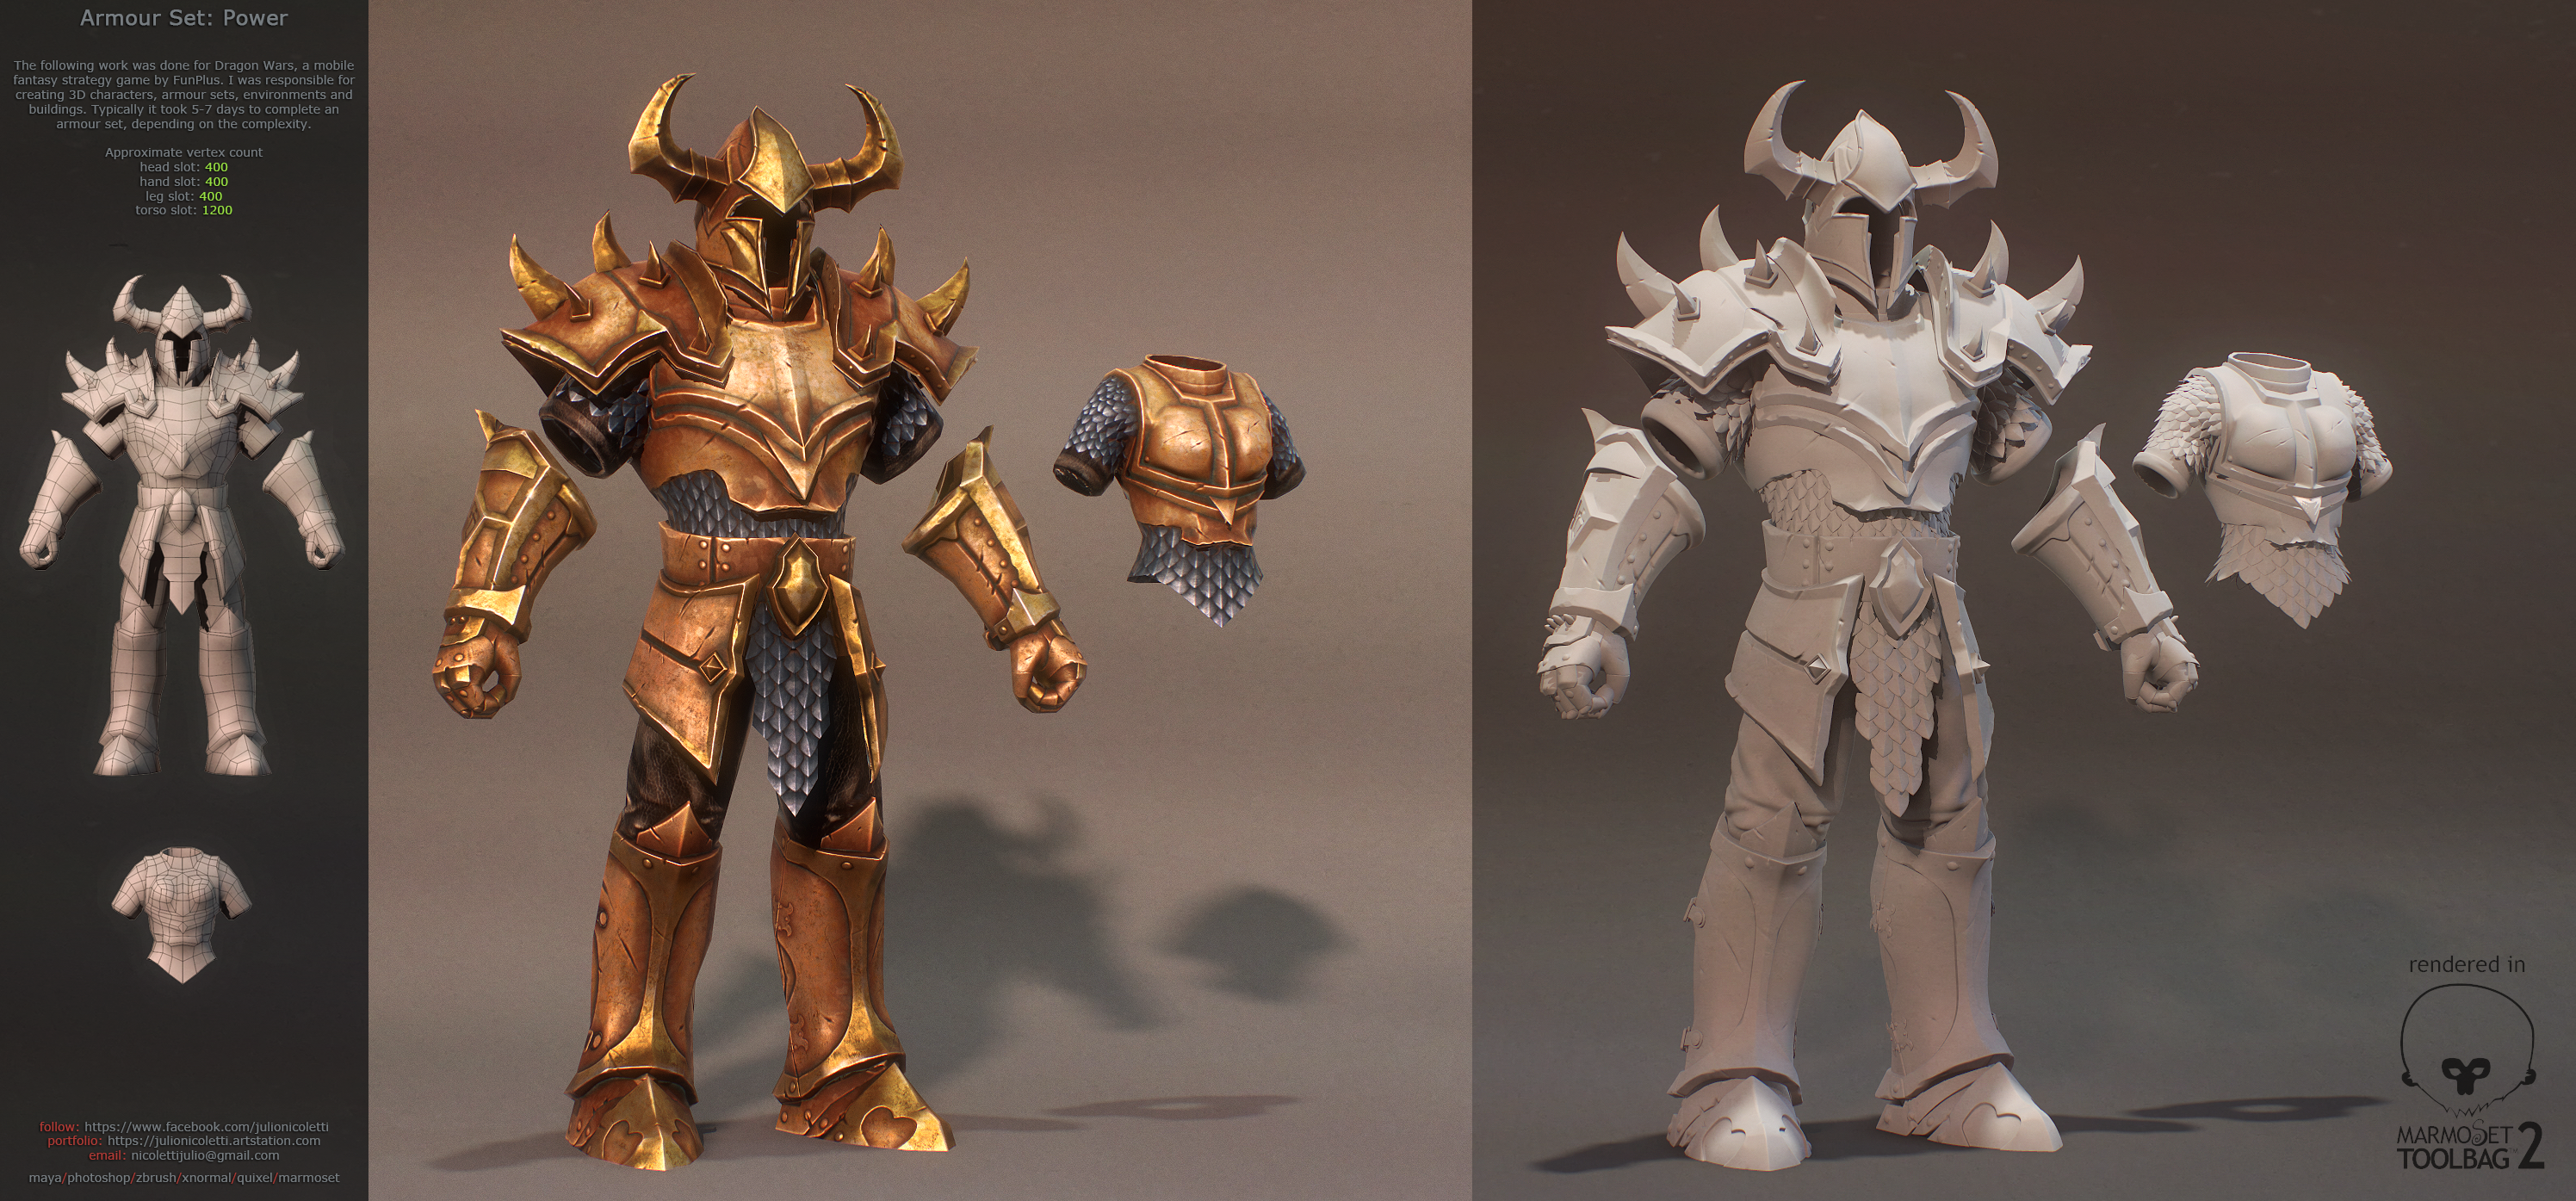 armour_set__power_by_julionicoletti-d942ac4.png